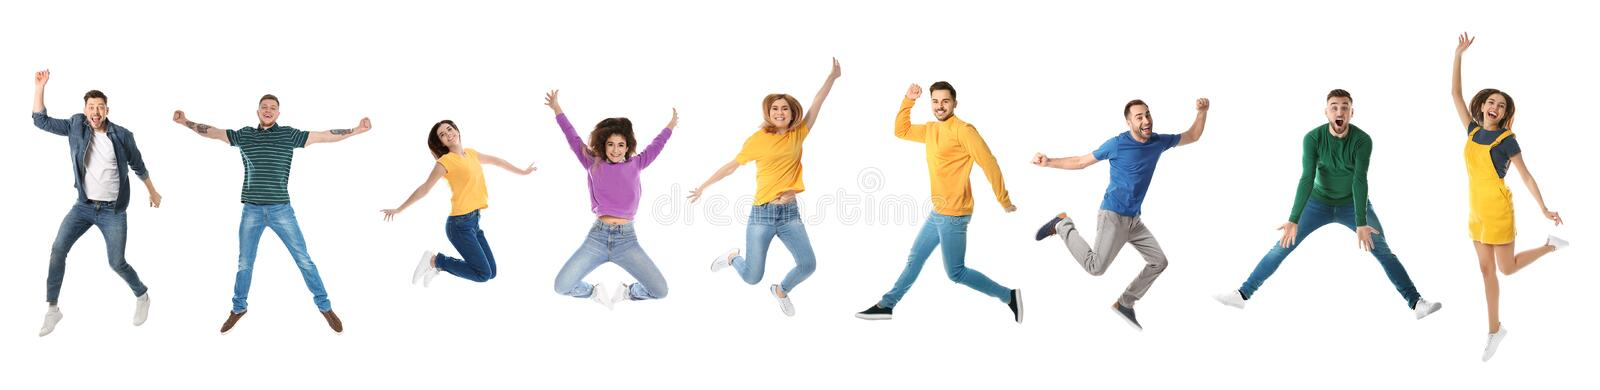 Collage of emotional people jumping on white background royalty free stock photos